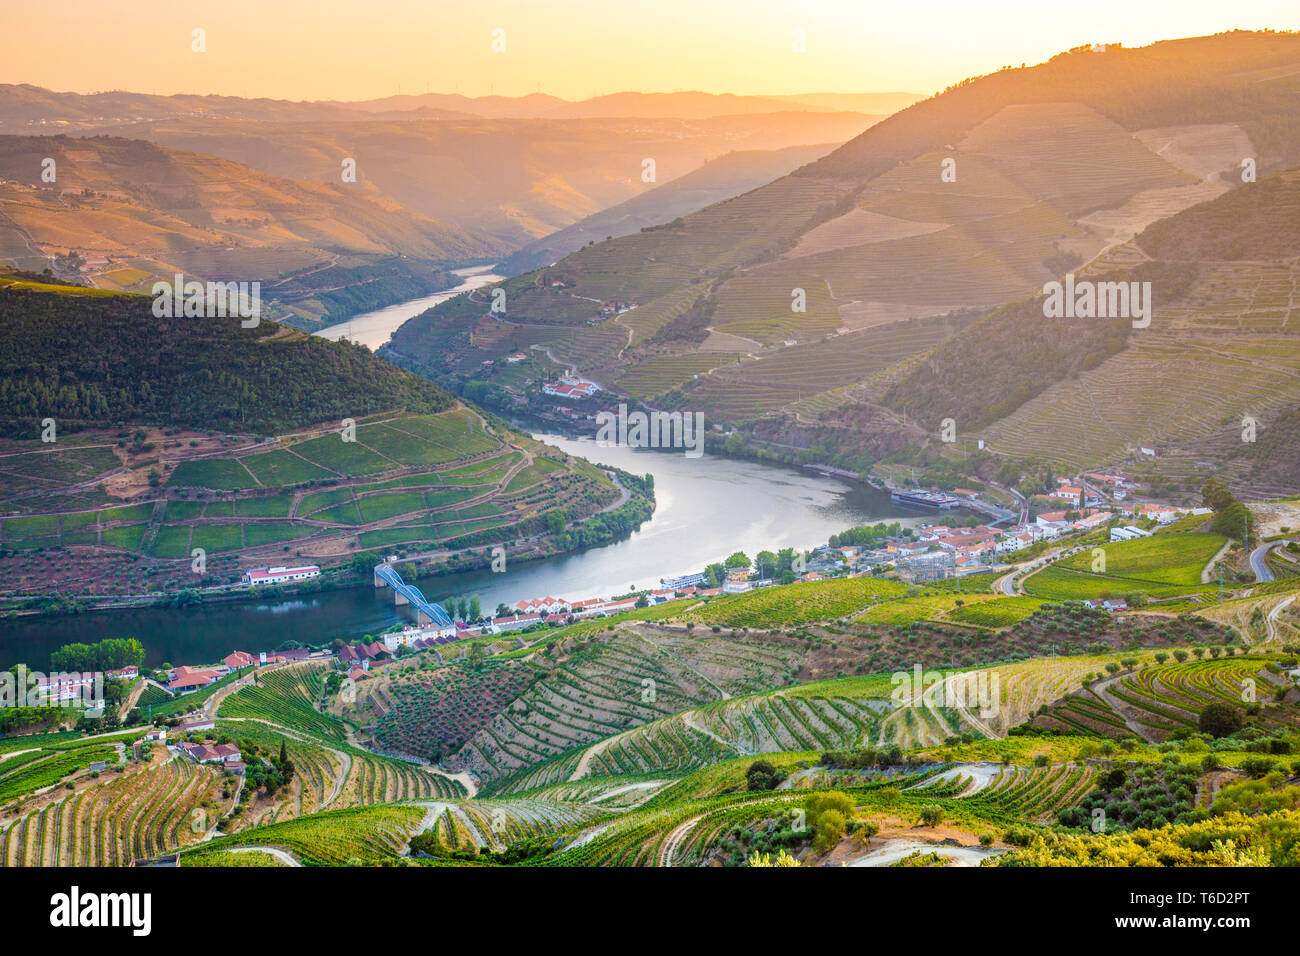 Portugal, Douro river at sunset, Terraced vineyards - Stock Image